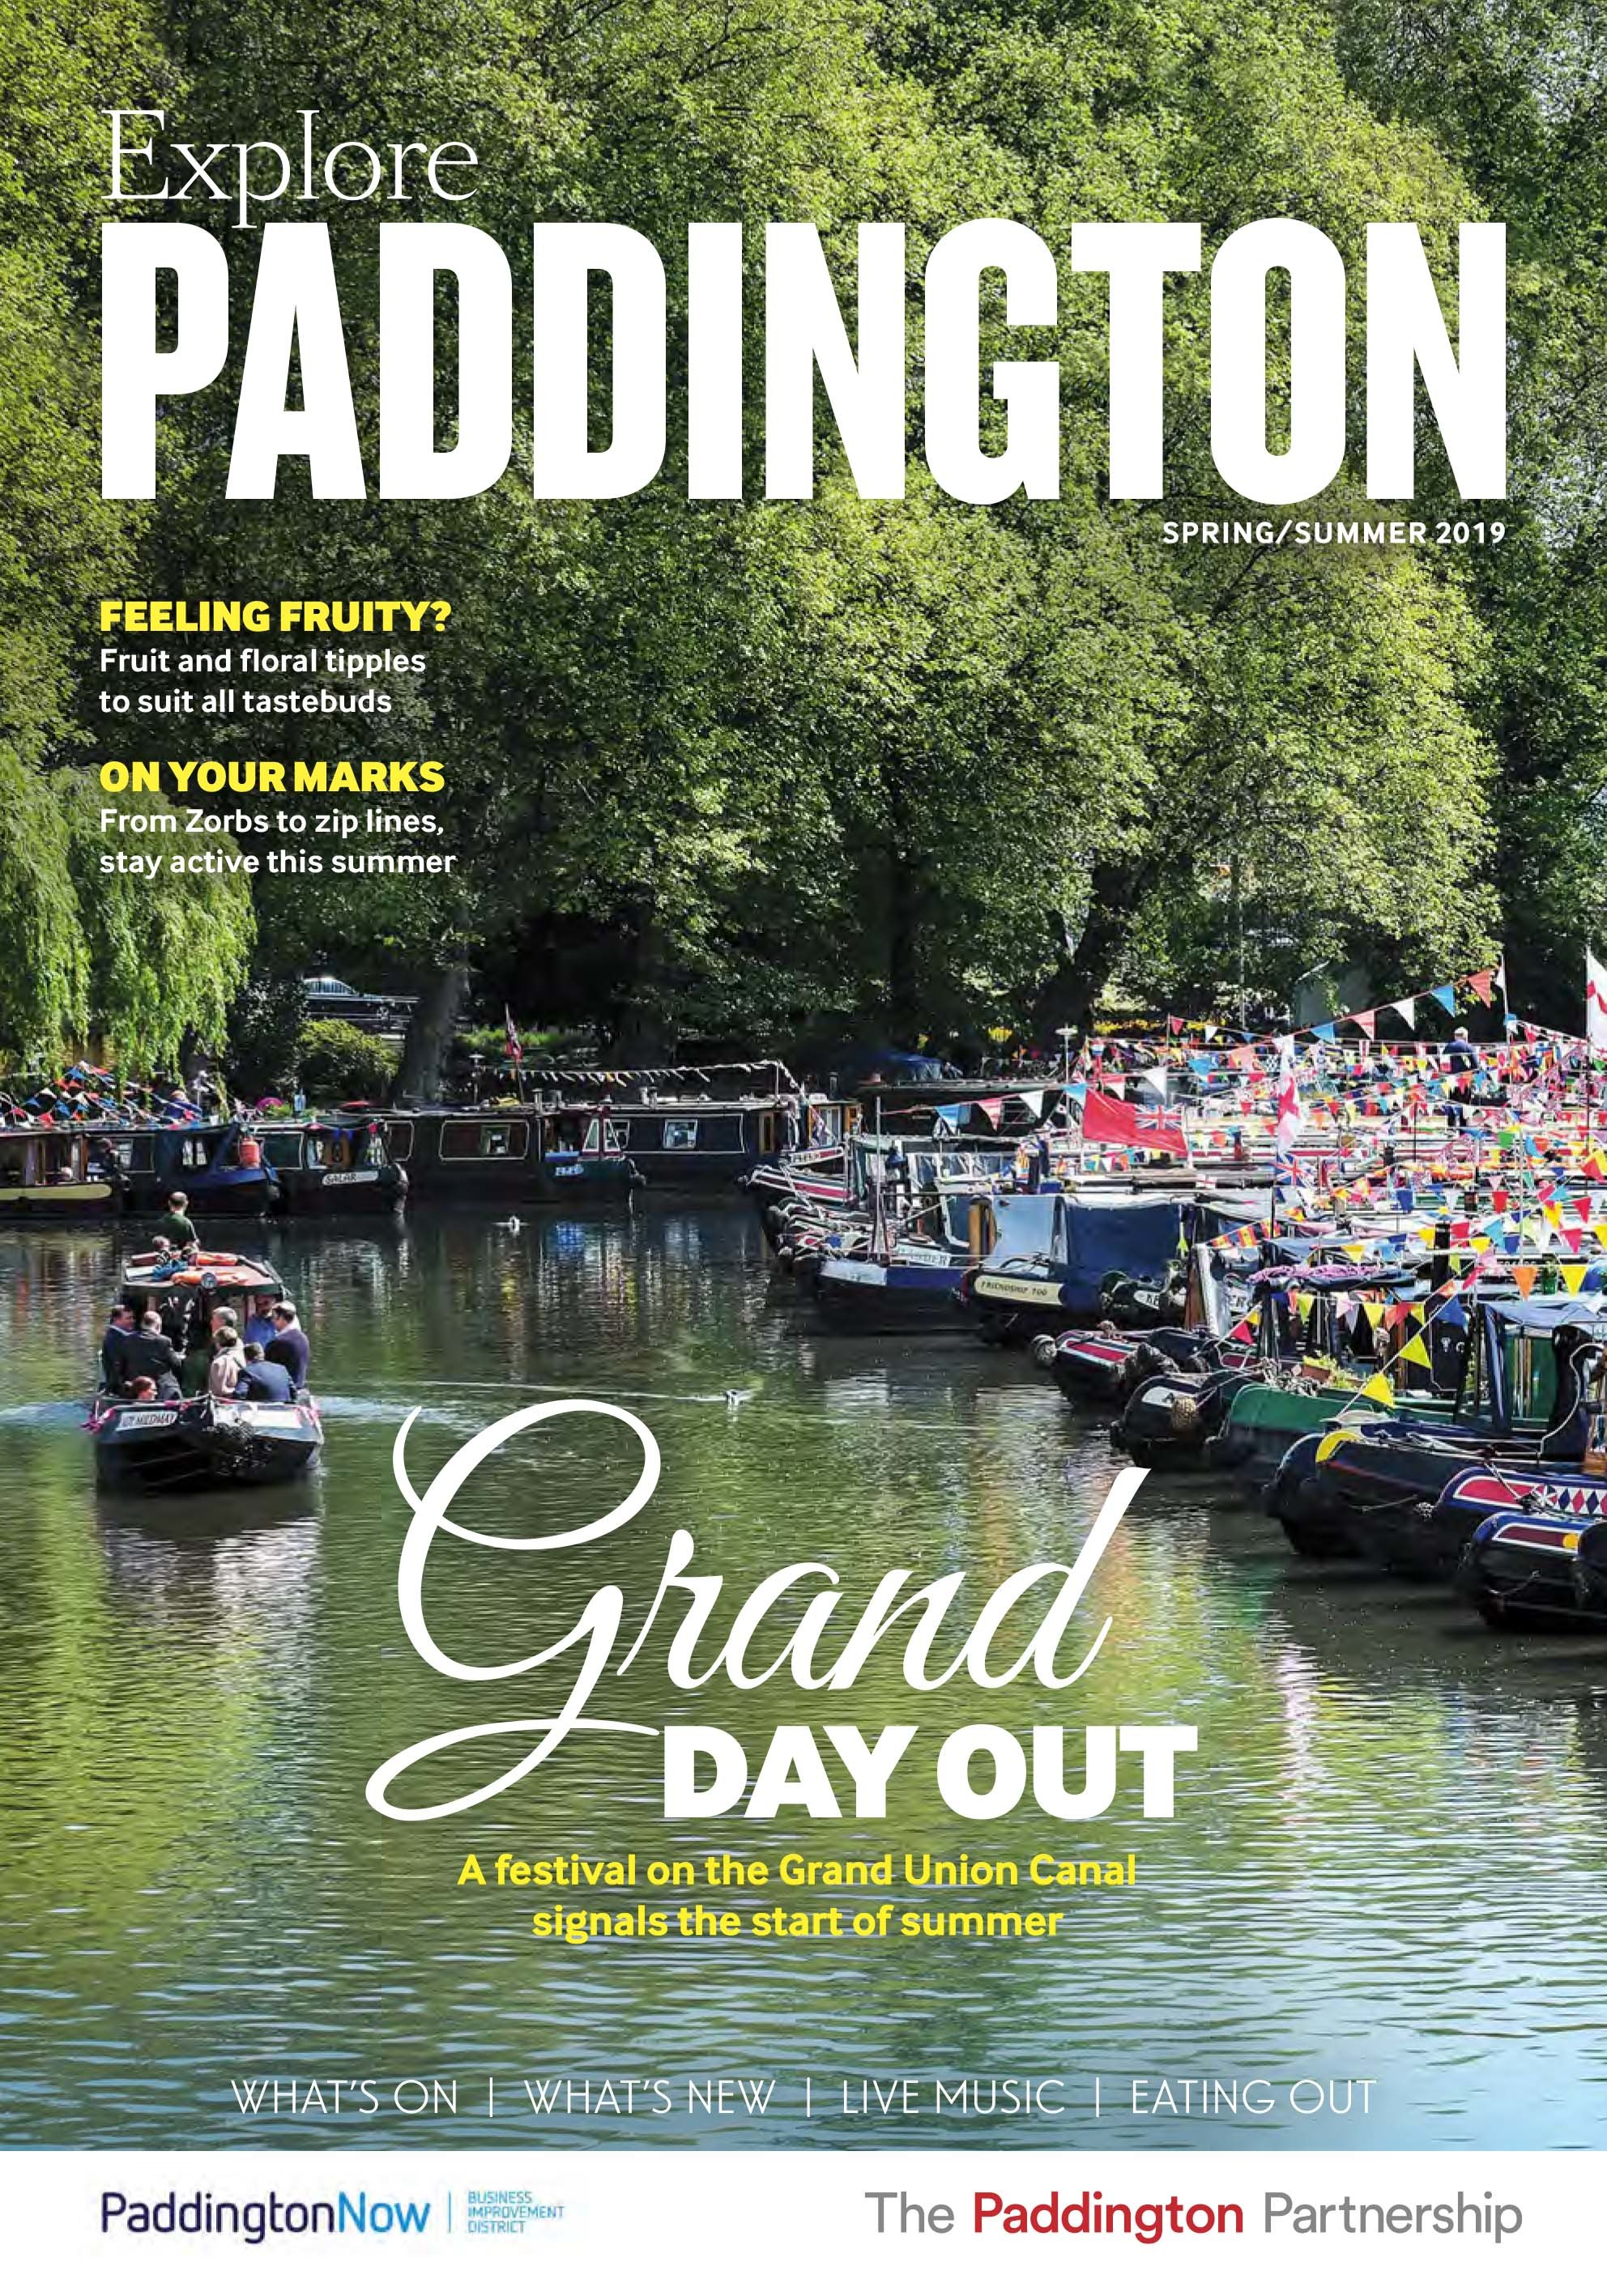 Explore Paddington, Spring/Summer 2019